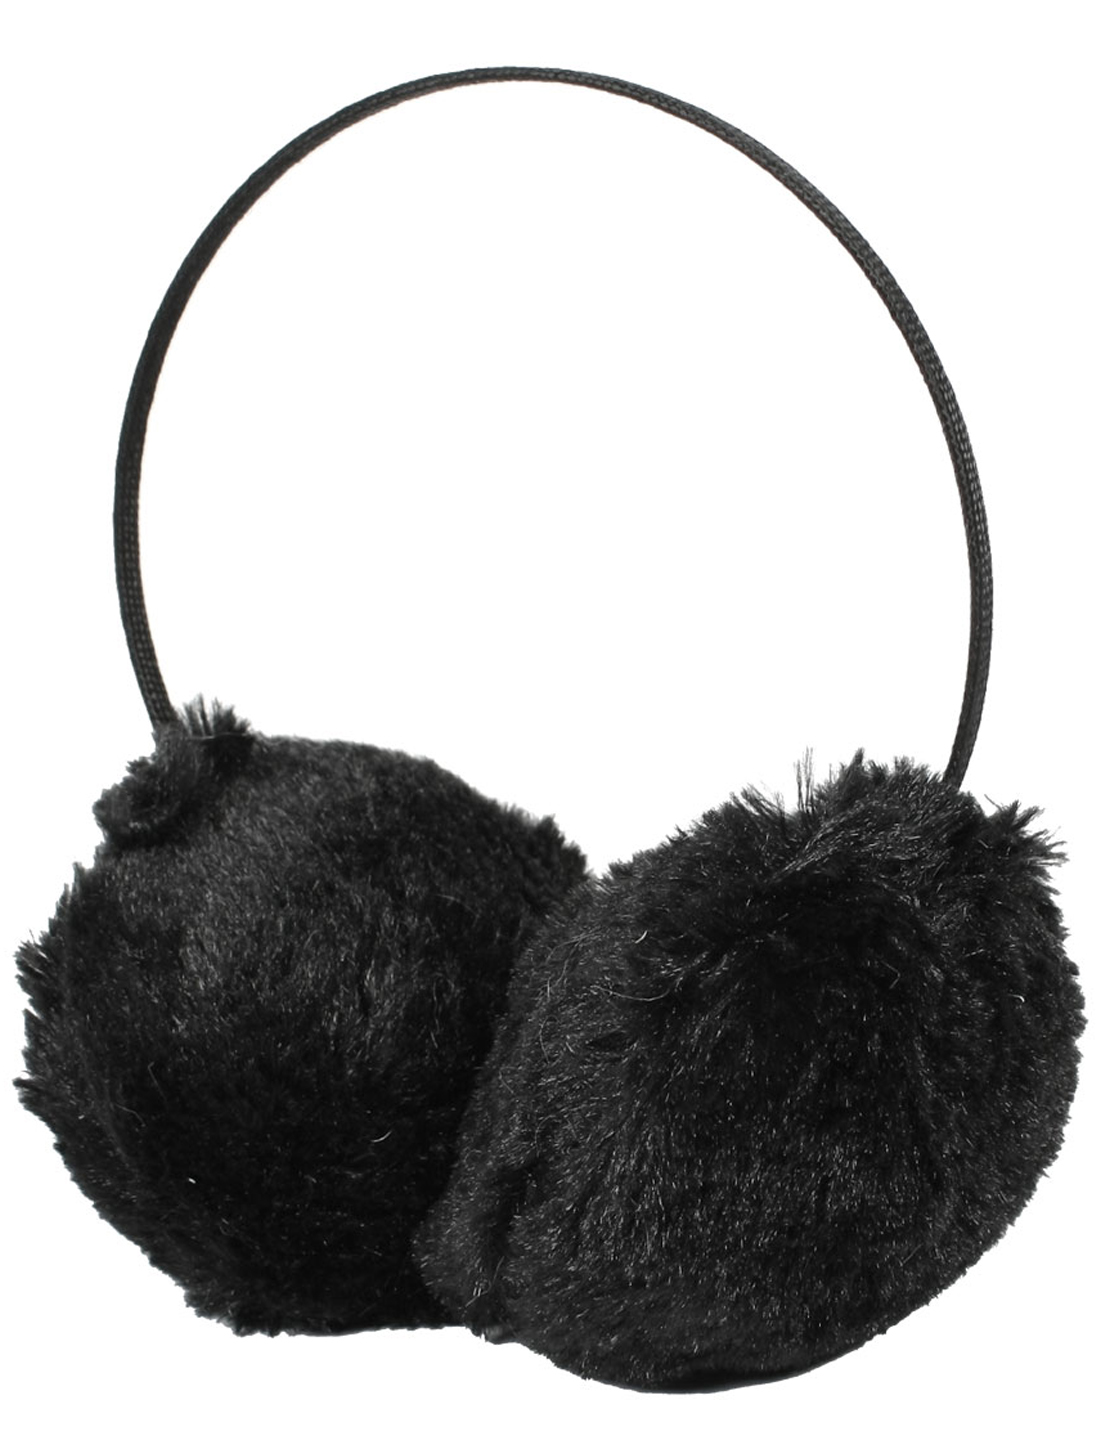 Black Fluffy Plush Winter Ear Warmer Earmuff Headband for Christmas